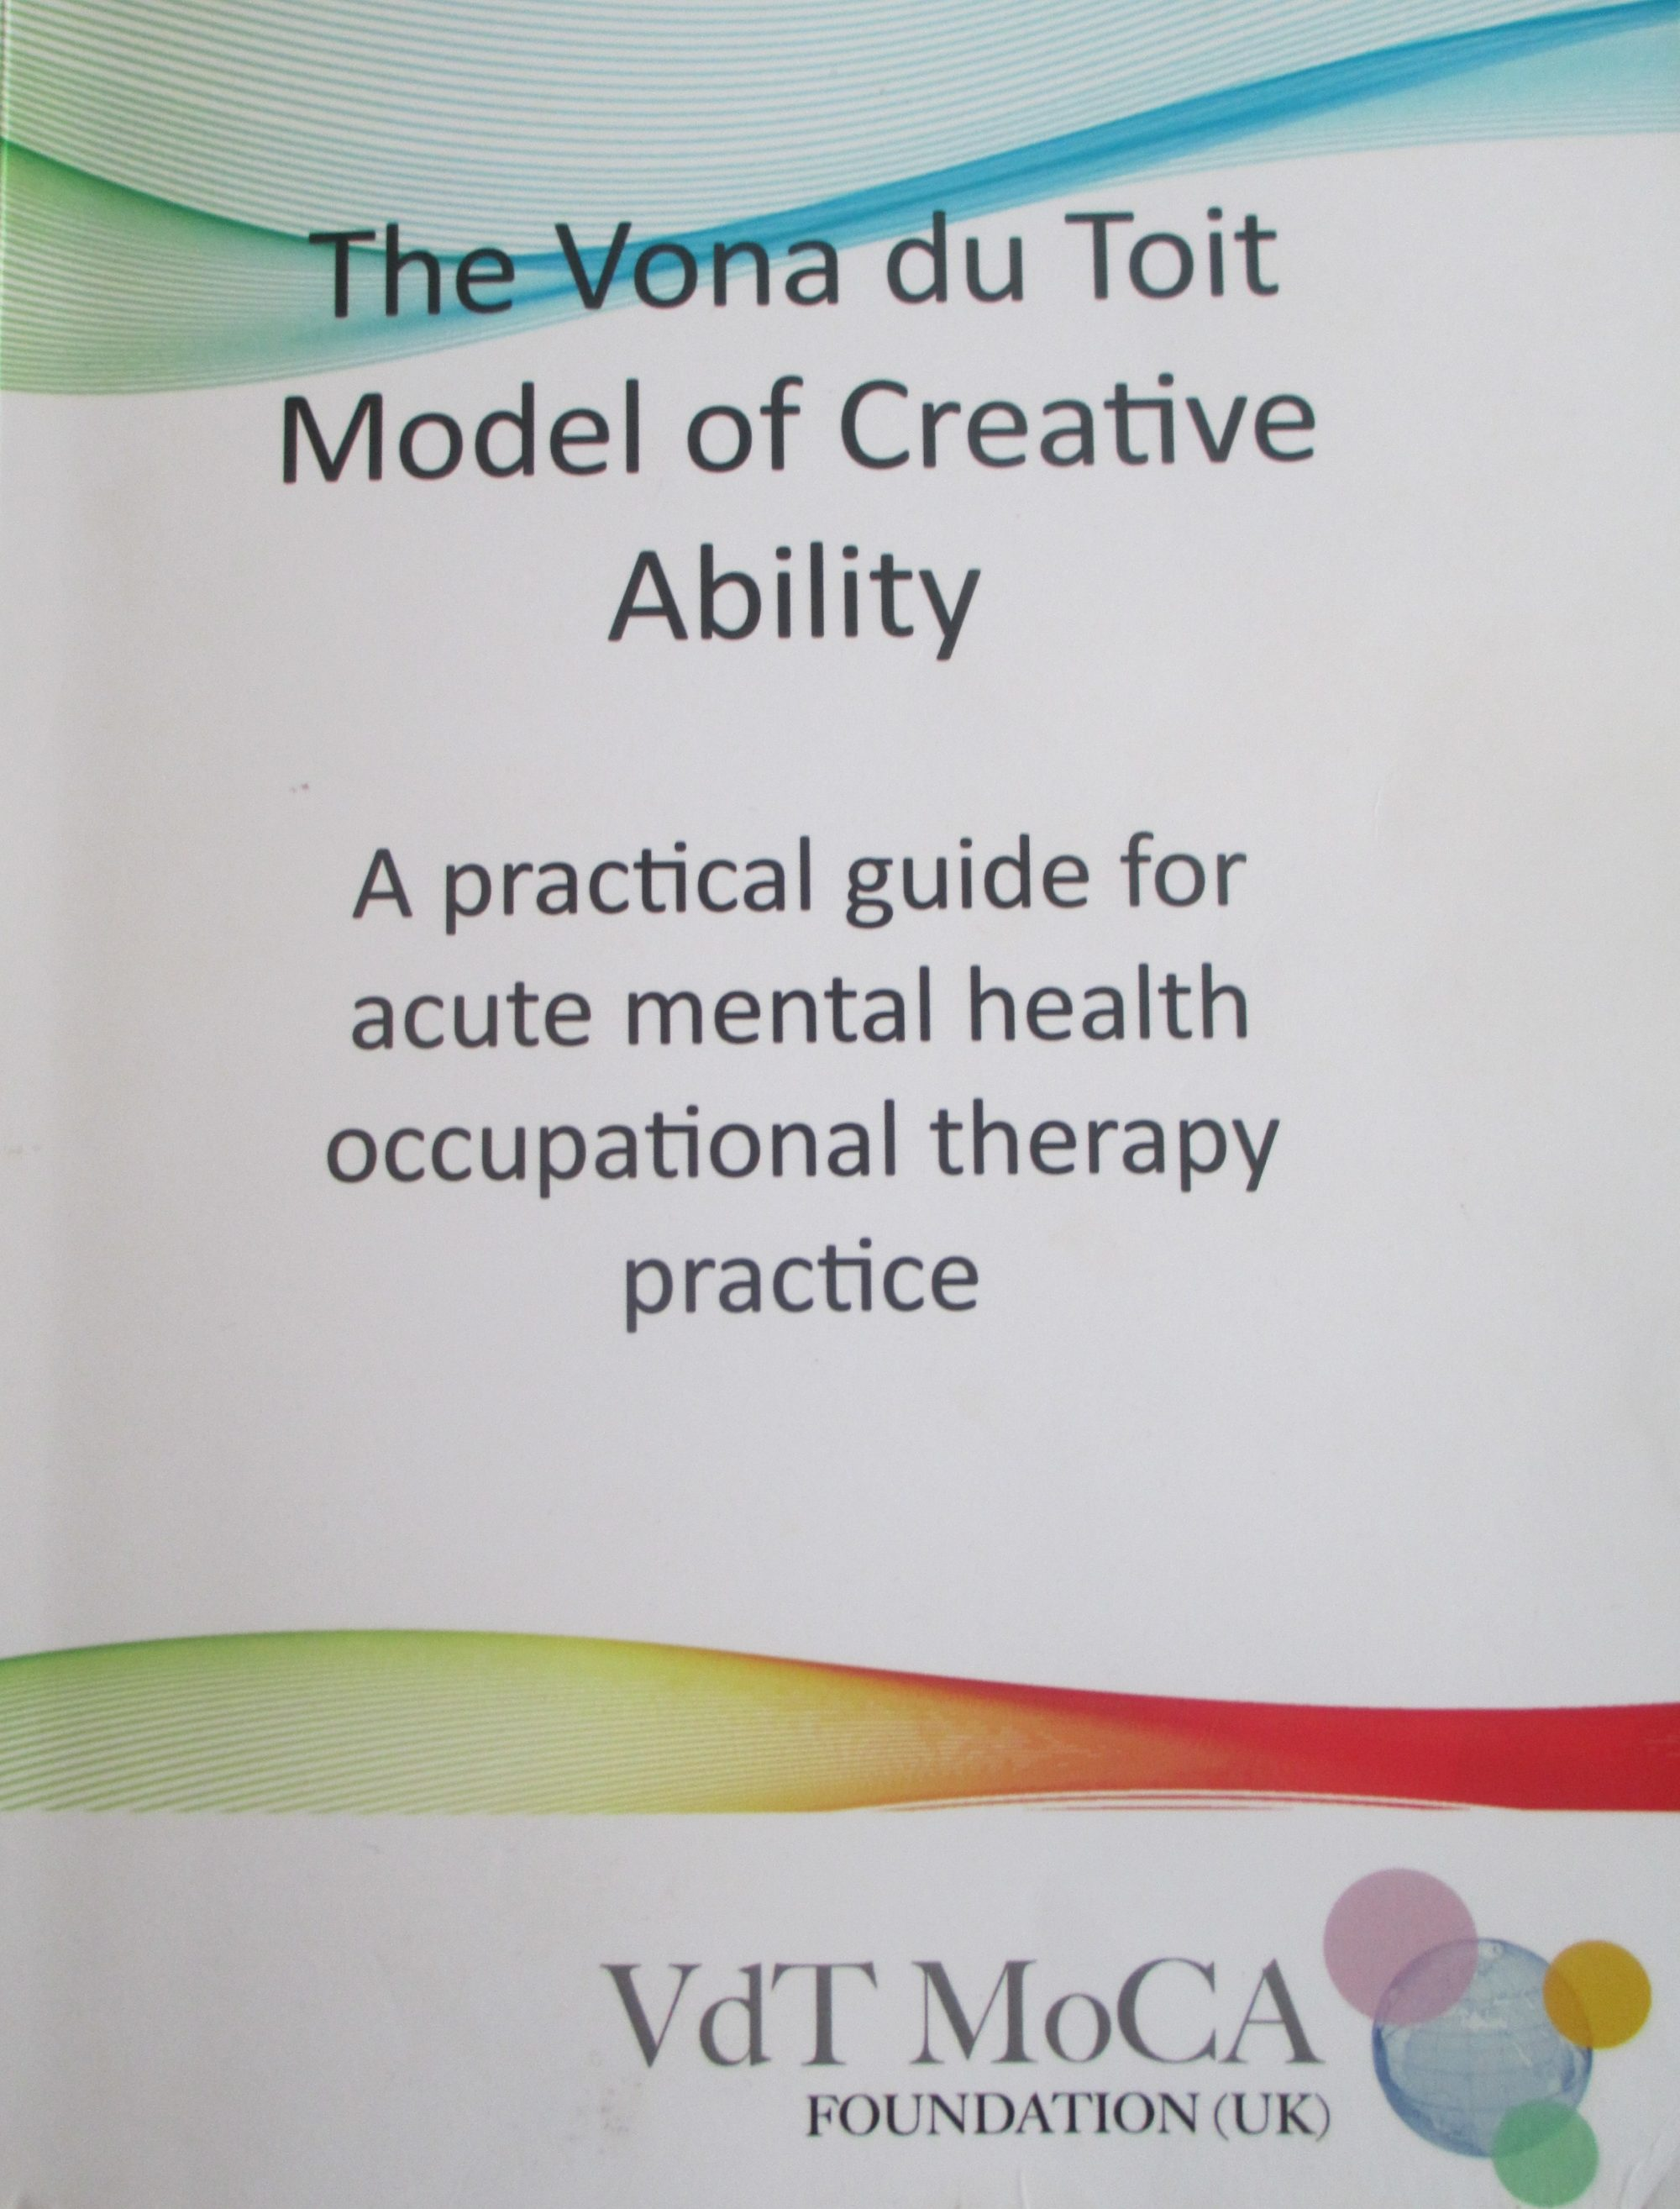 The Vona Du Toit Model of Creative Ability: a practical guide to acute mental health occupational therapy practice